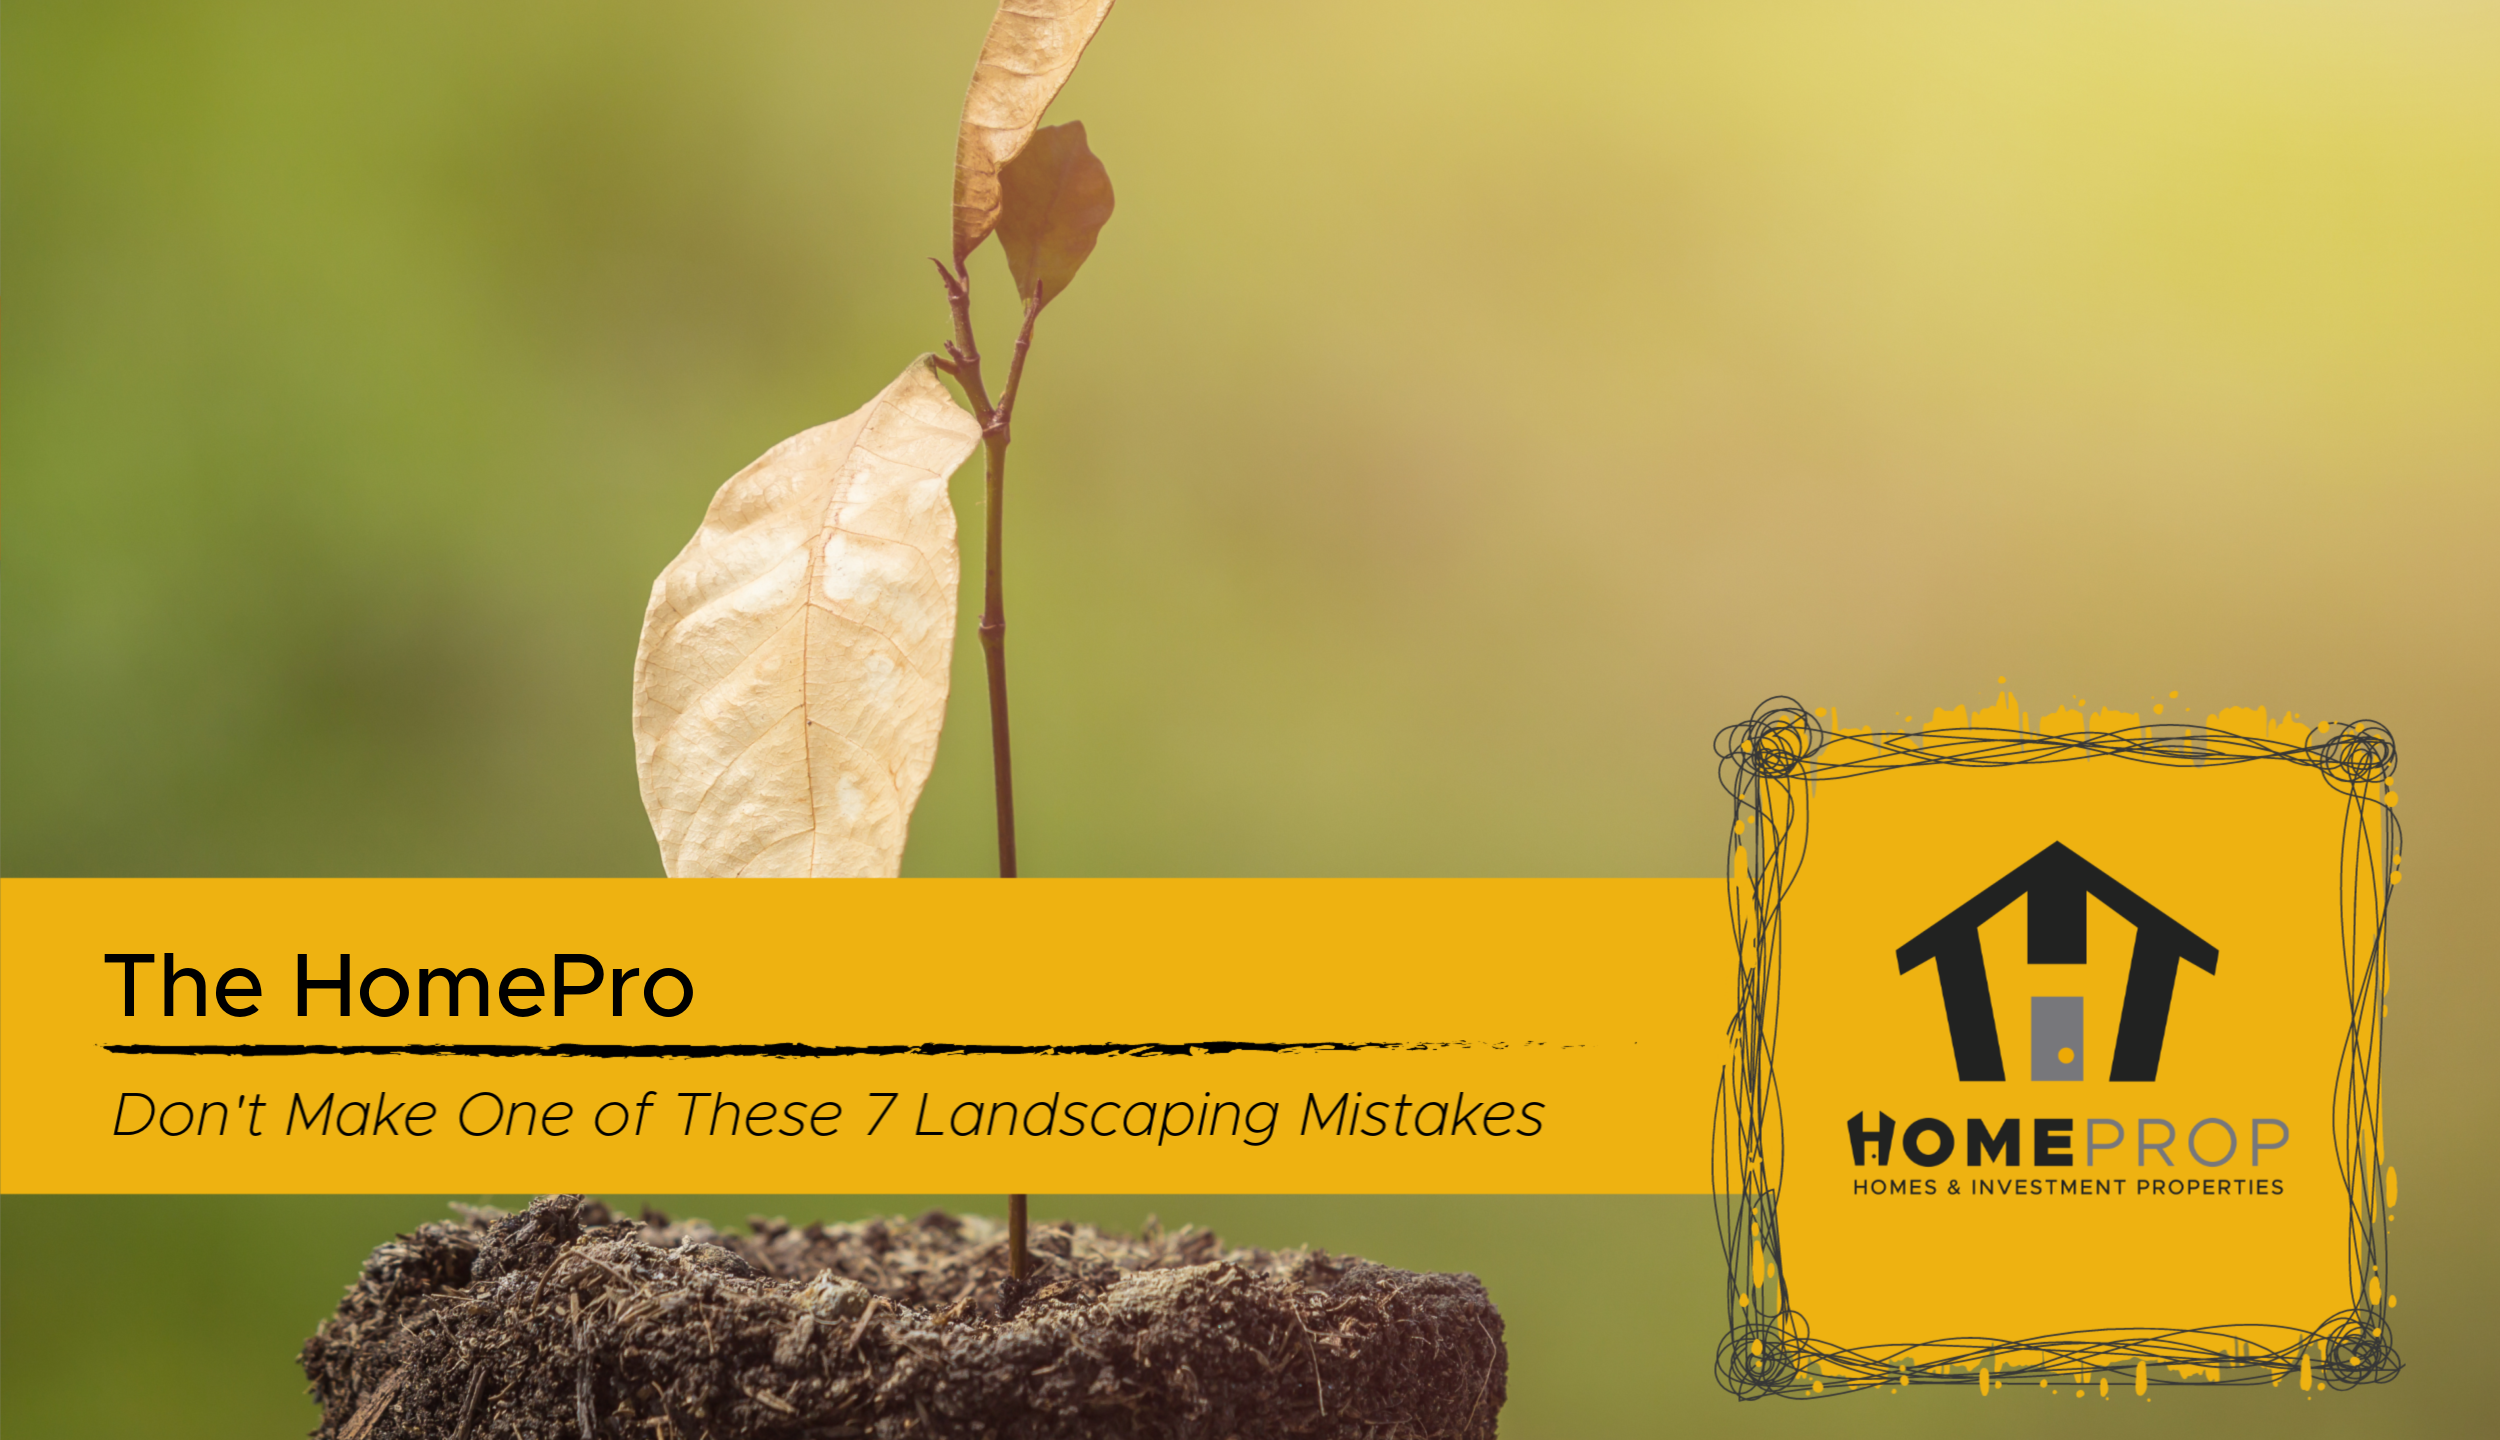 7 Common Landscaping Mistakes